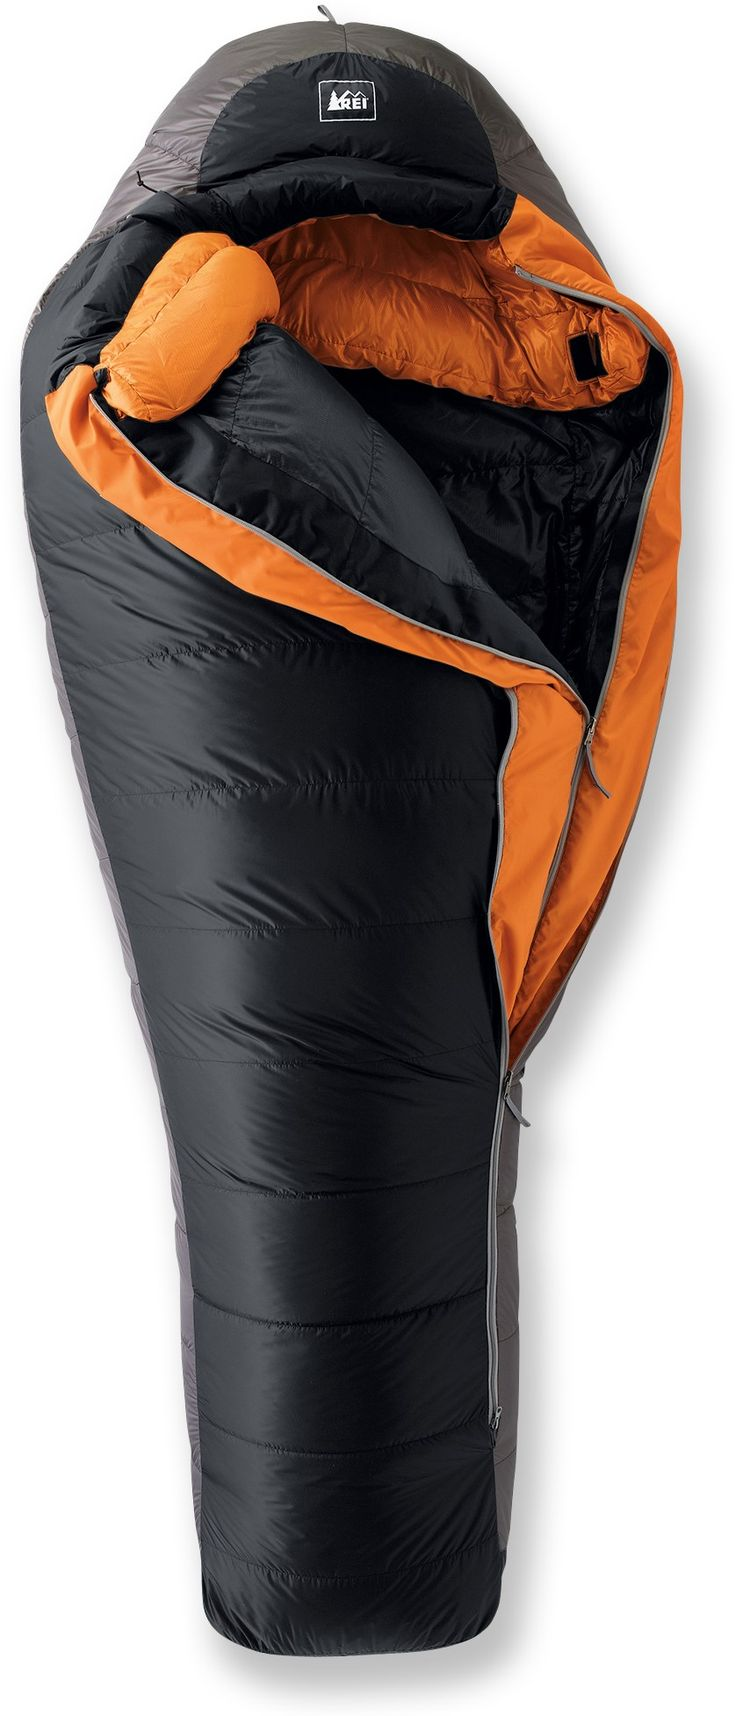 REI Expedition Sleeping Bag